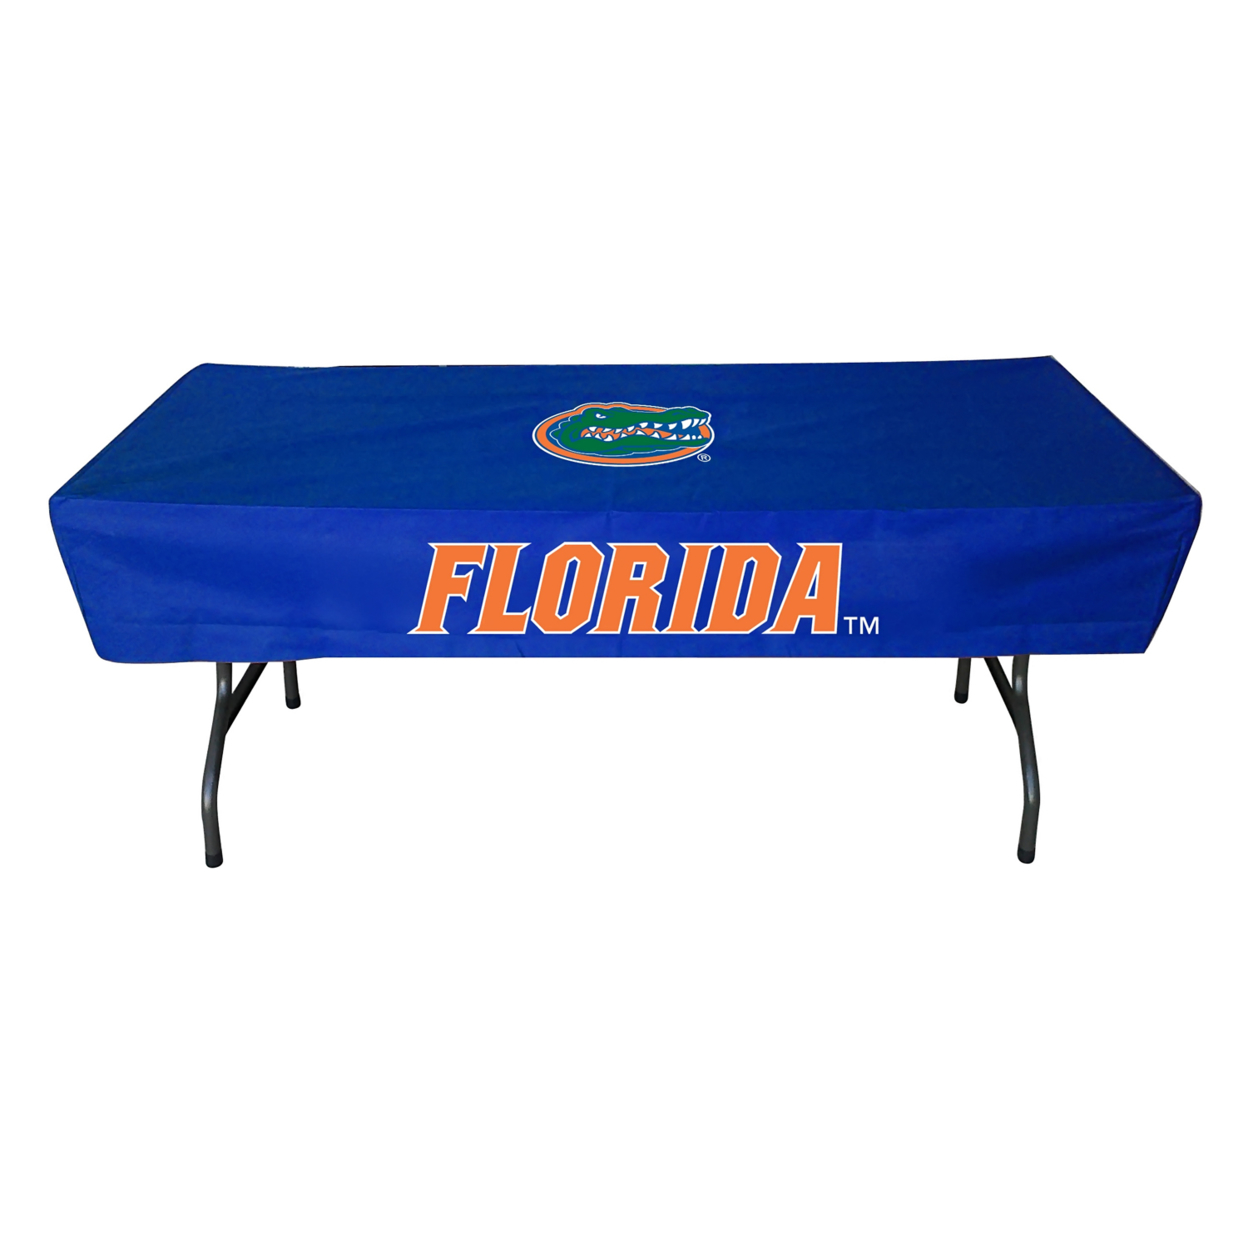 Rivalry 6 Feet Florida State Sports Collegiate Team Logo Party Outdoor Camping Table Cover бюстгальтер пуш ап lupoline цвет изумрудный